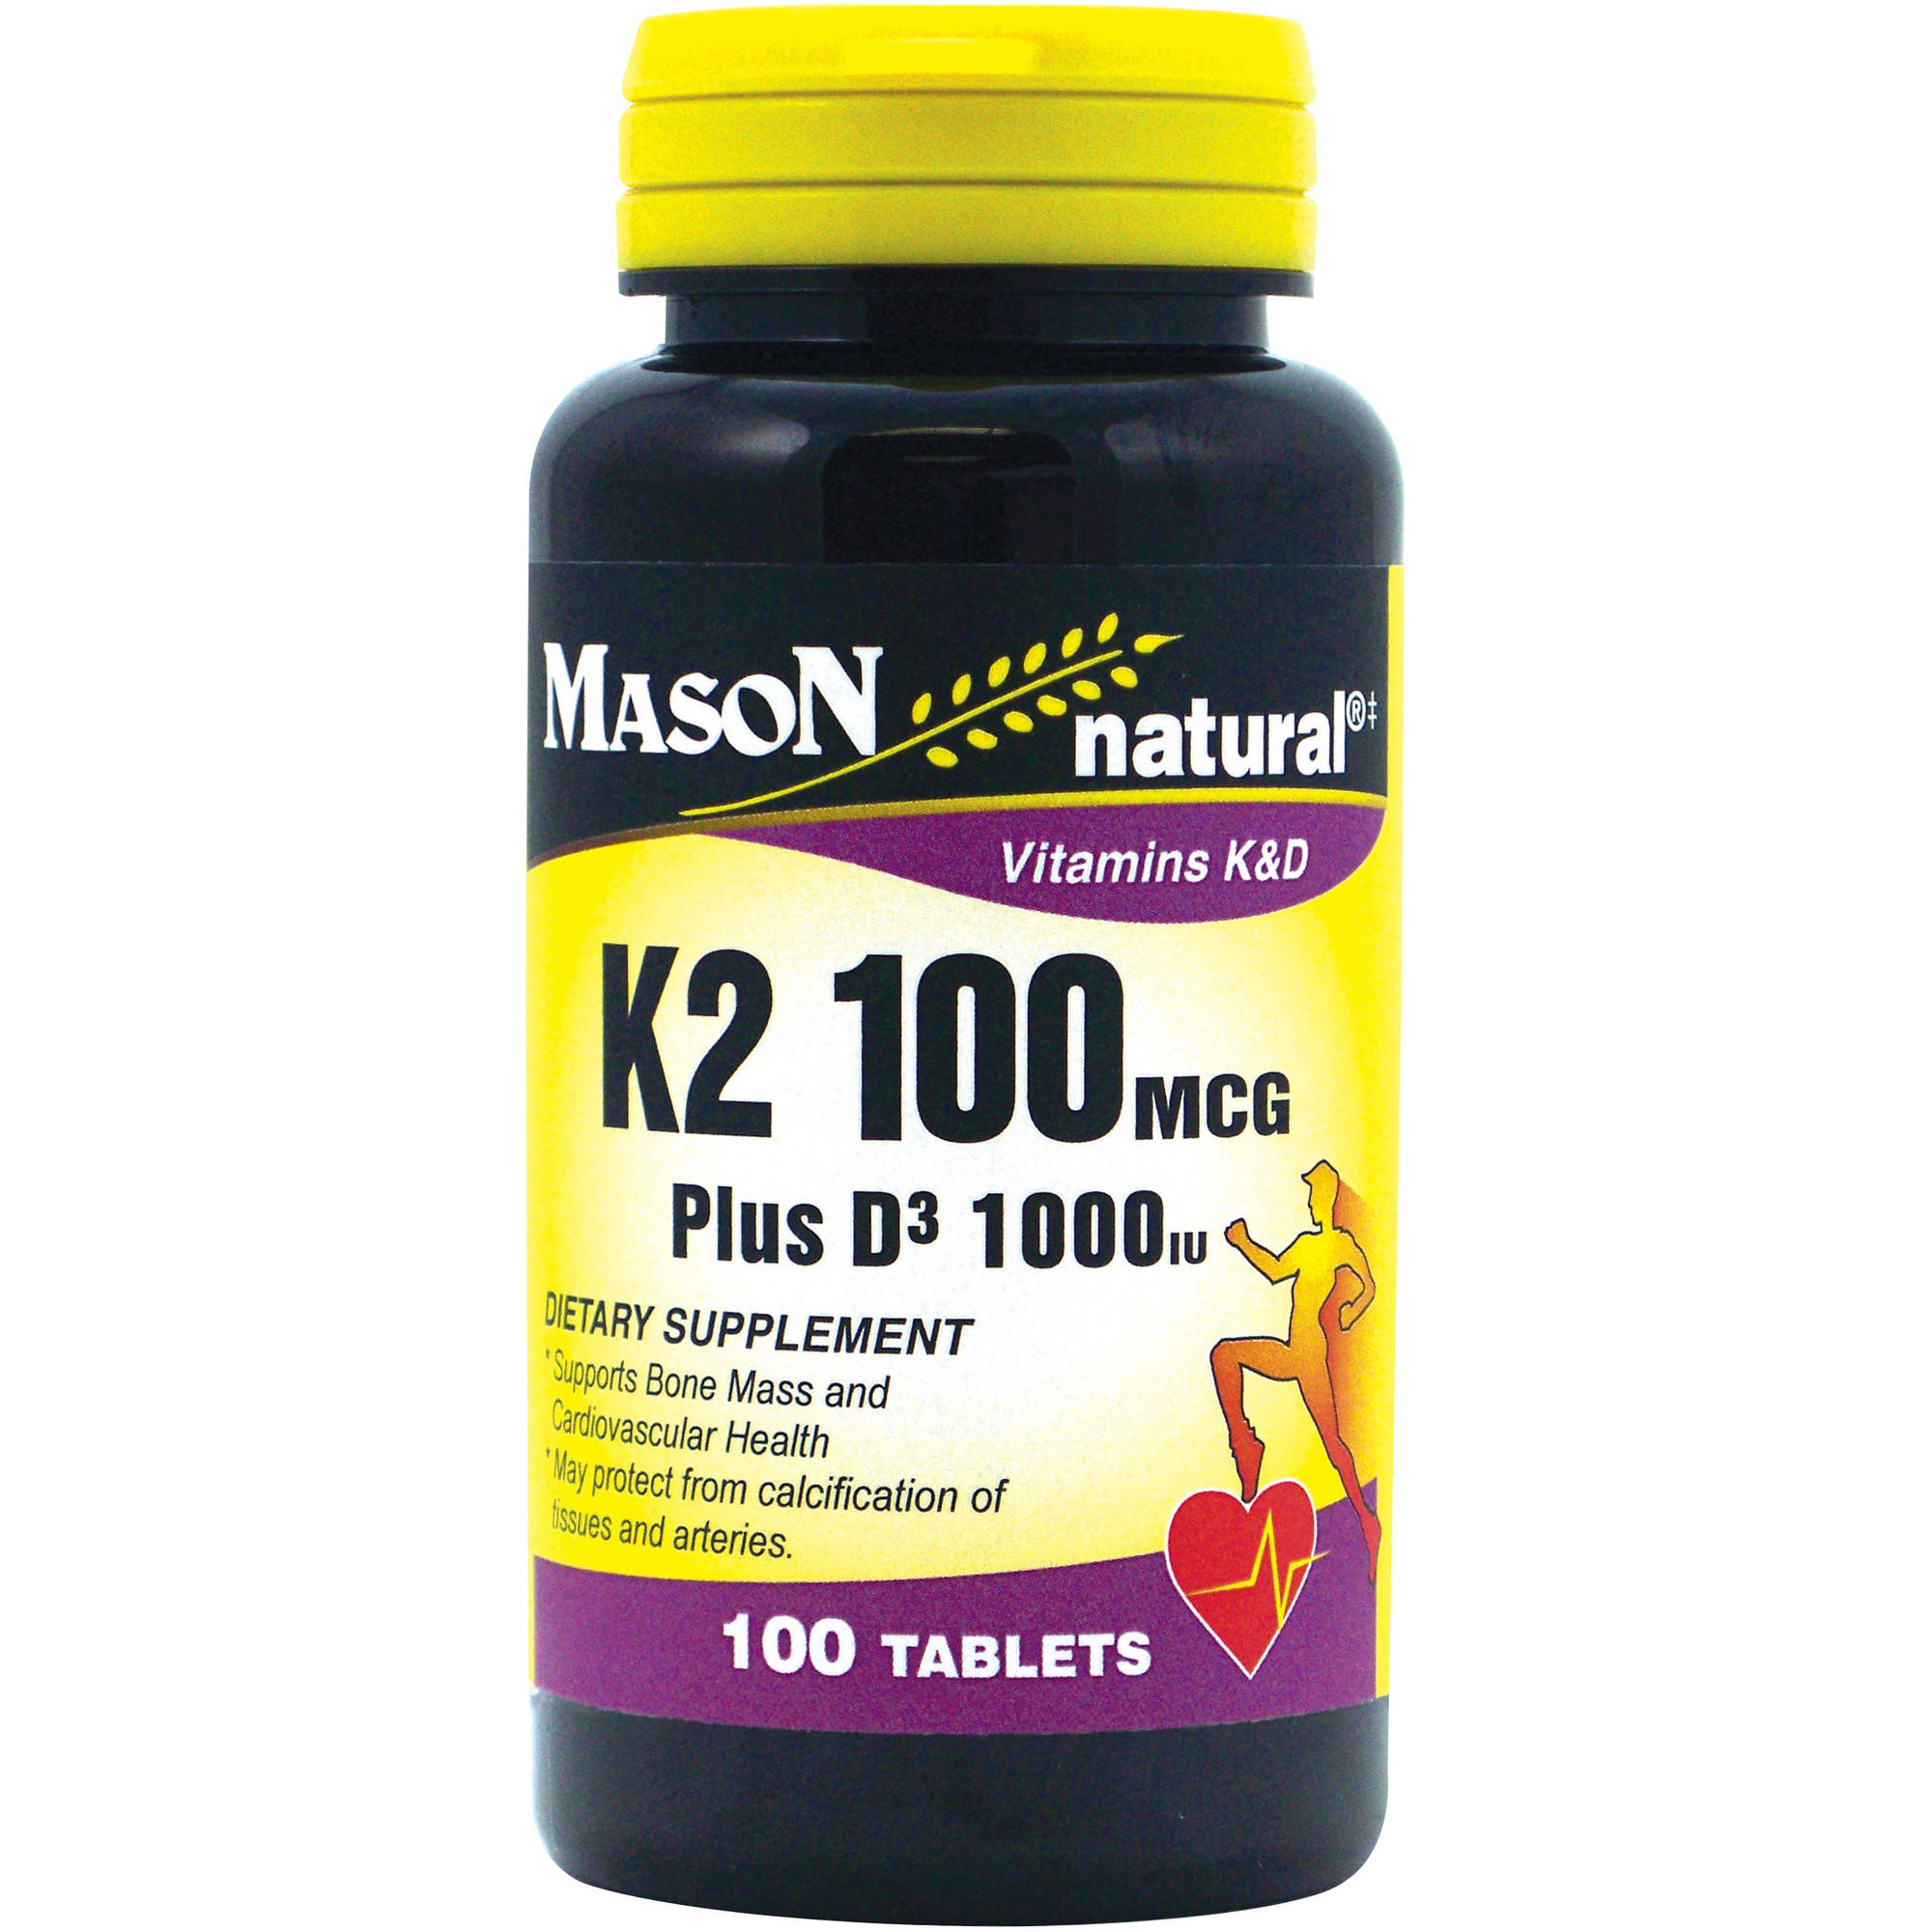 Mason natural K2 Plus D3 Dietary Supplement, 100 count